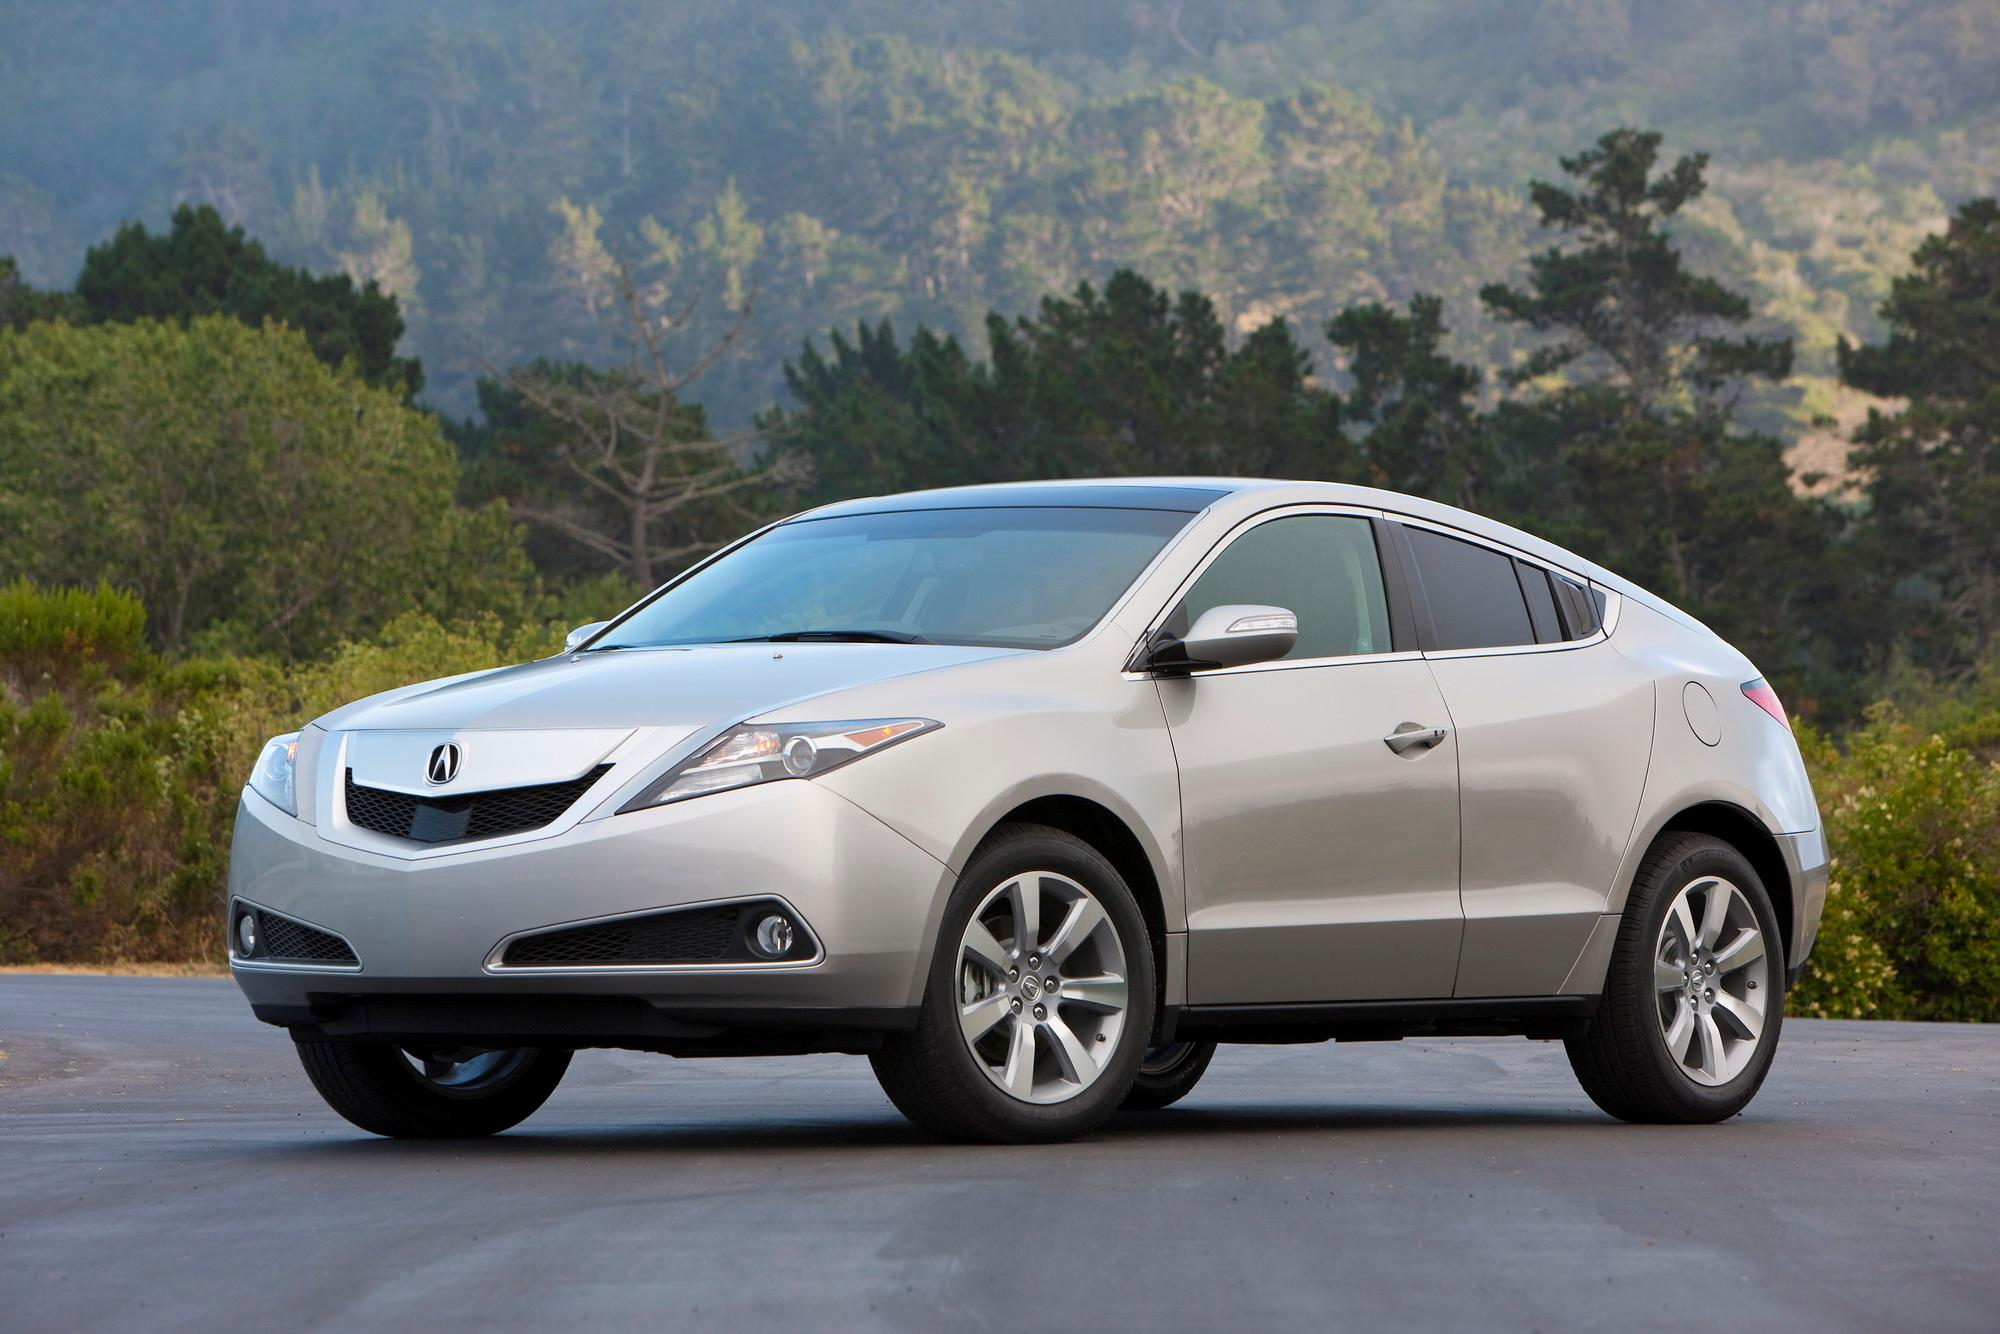 2011 acura zdx review gallery top speed. Black Bedroom Furniture Sets. Home Design Ideas